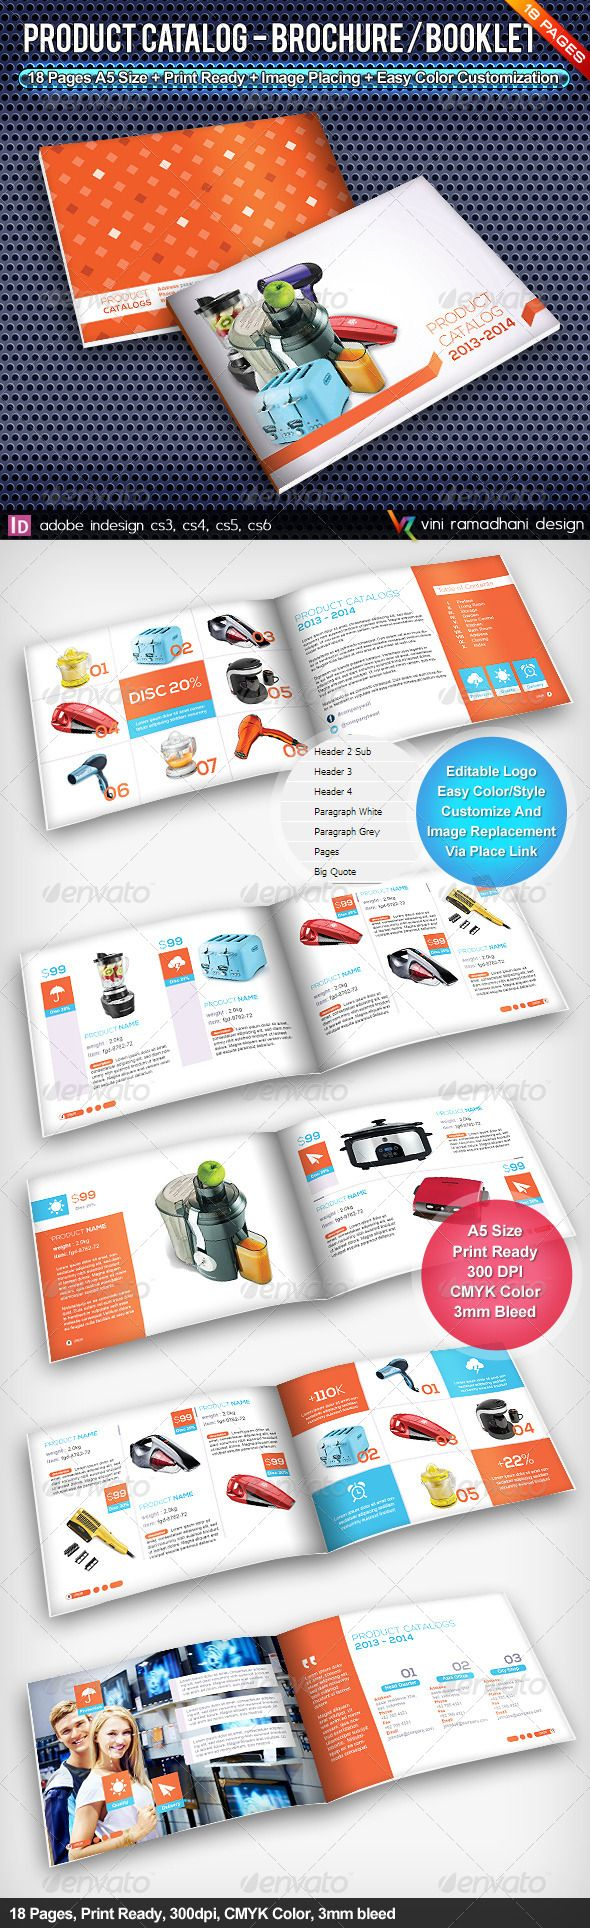 Product Catalogs Brochure Or Booklet  Product Catalog Brochures